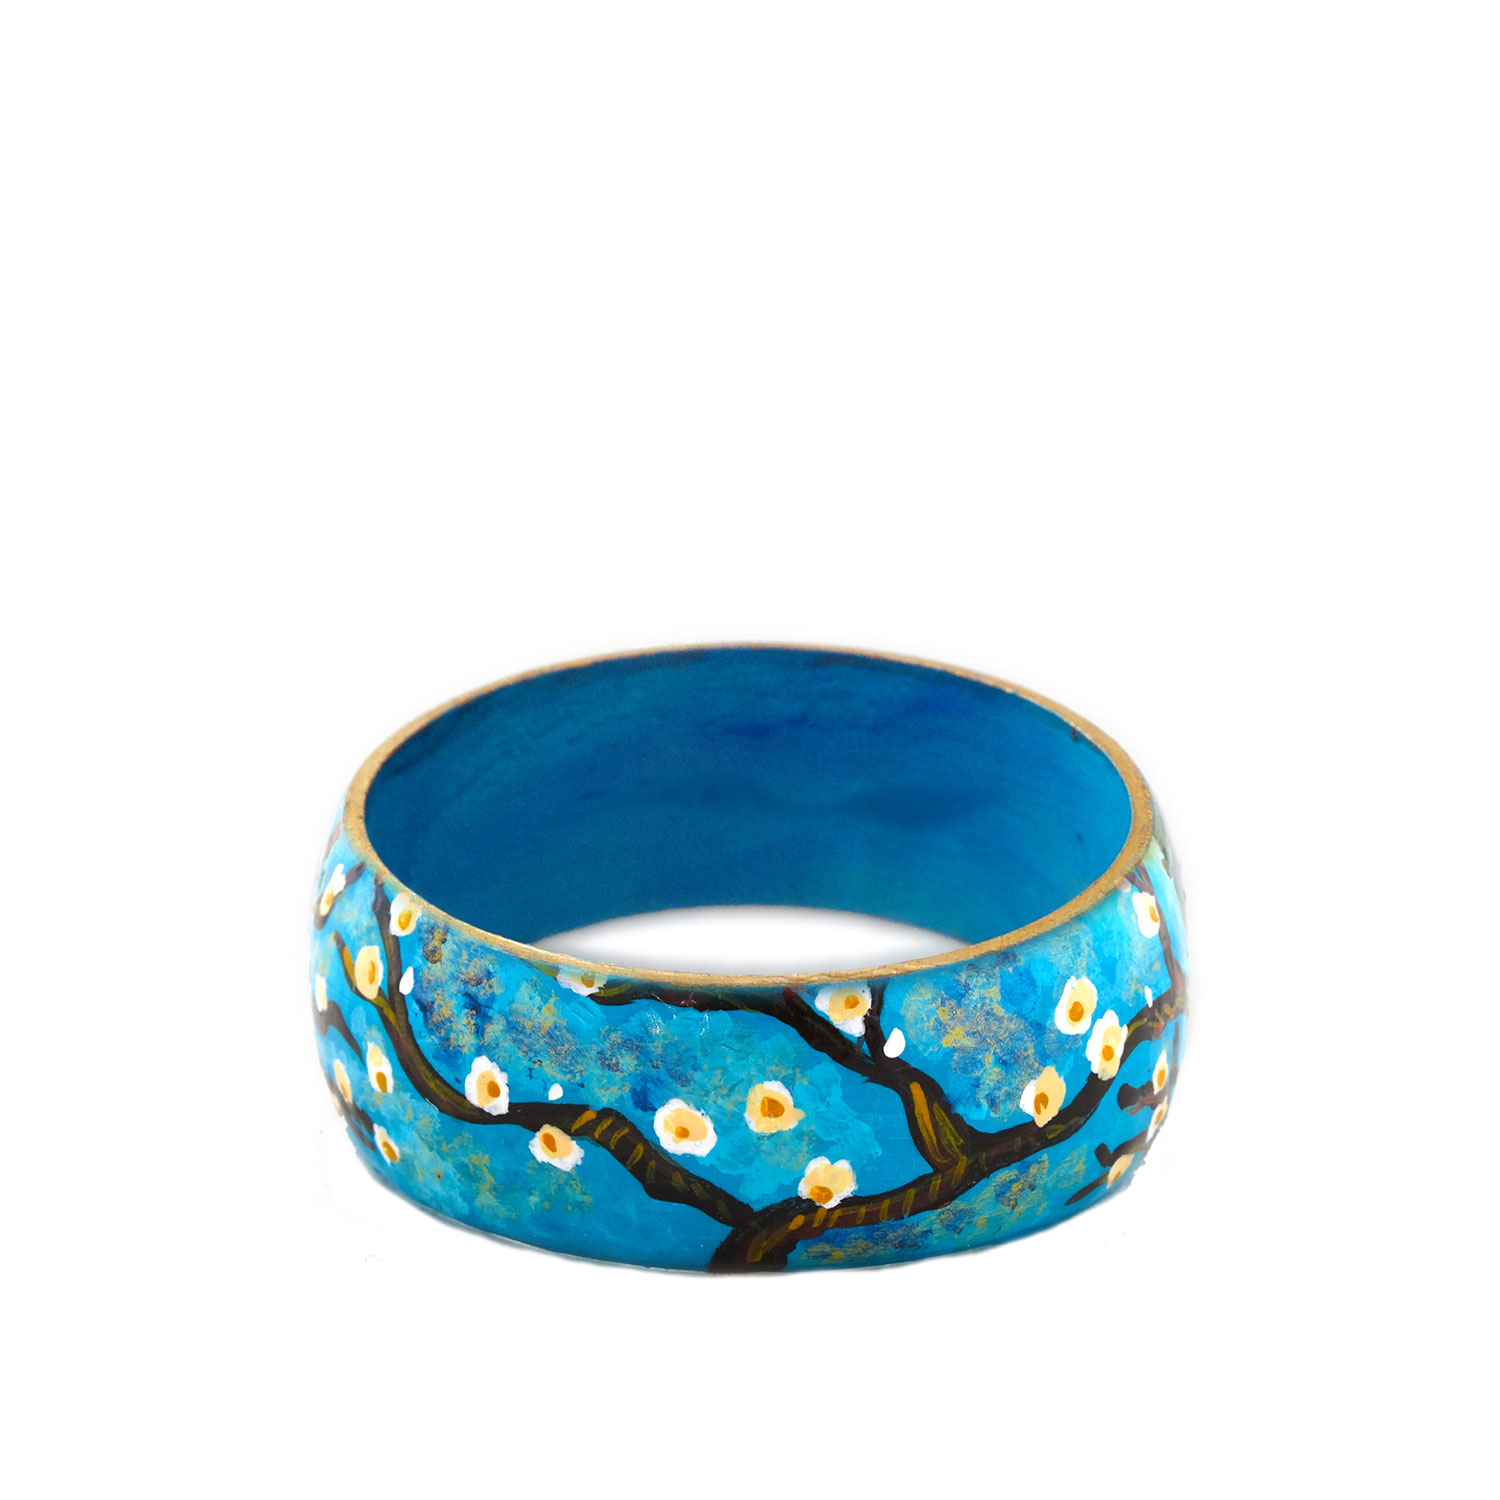 Hand-painted bracelet - The Almond tree by Van Gogh